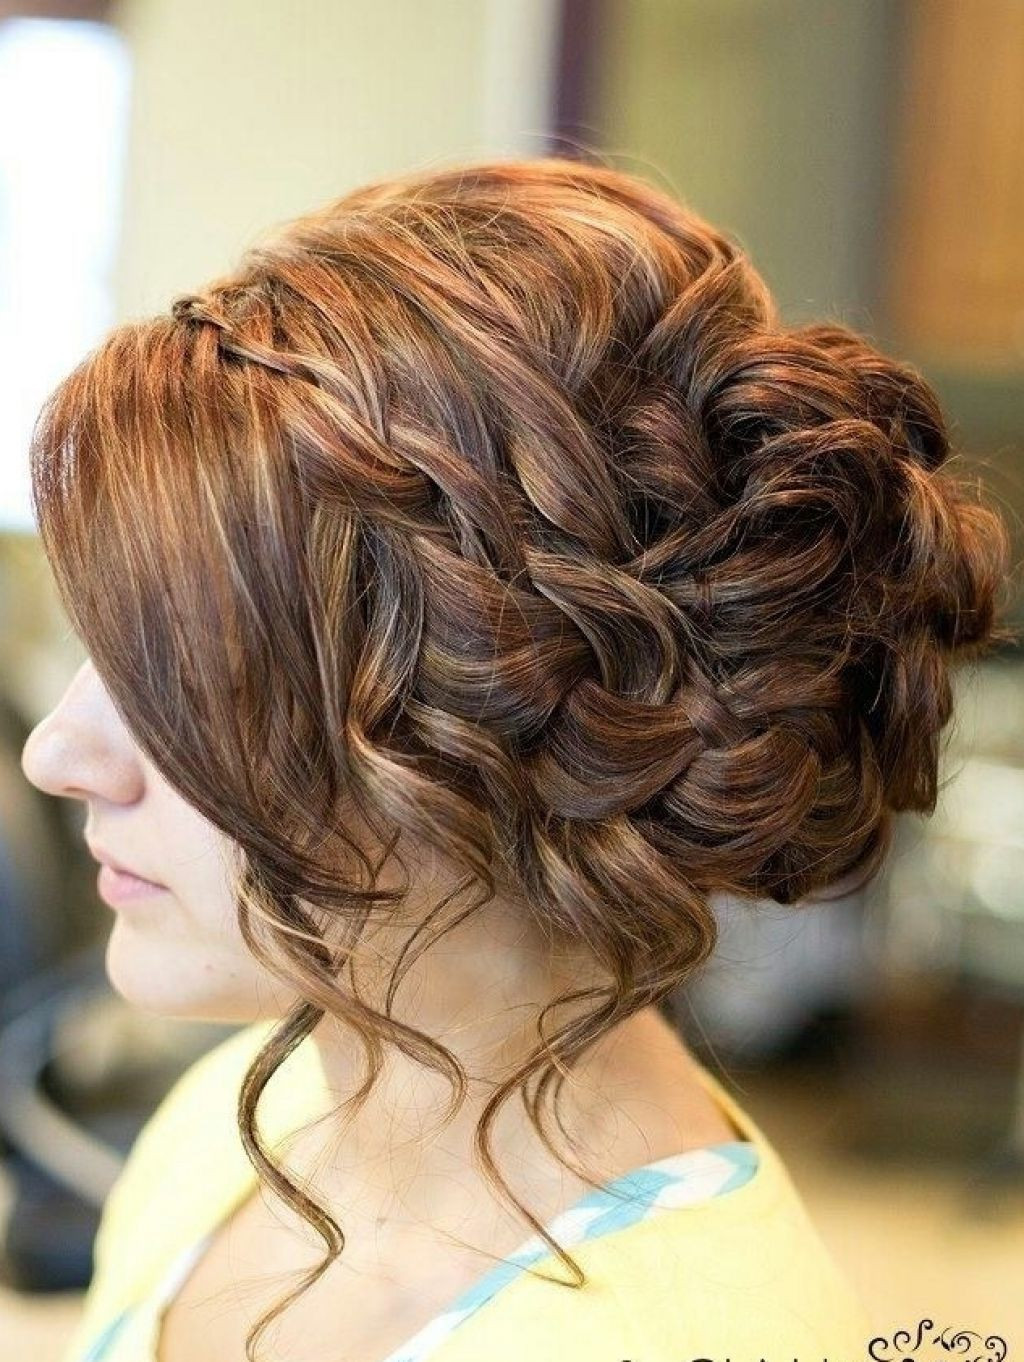 Prom Hairstyle Braid  14 Prom Hairstyles For Long Hair That Are Simply Adorable